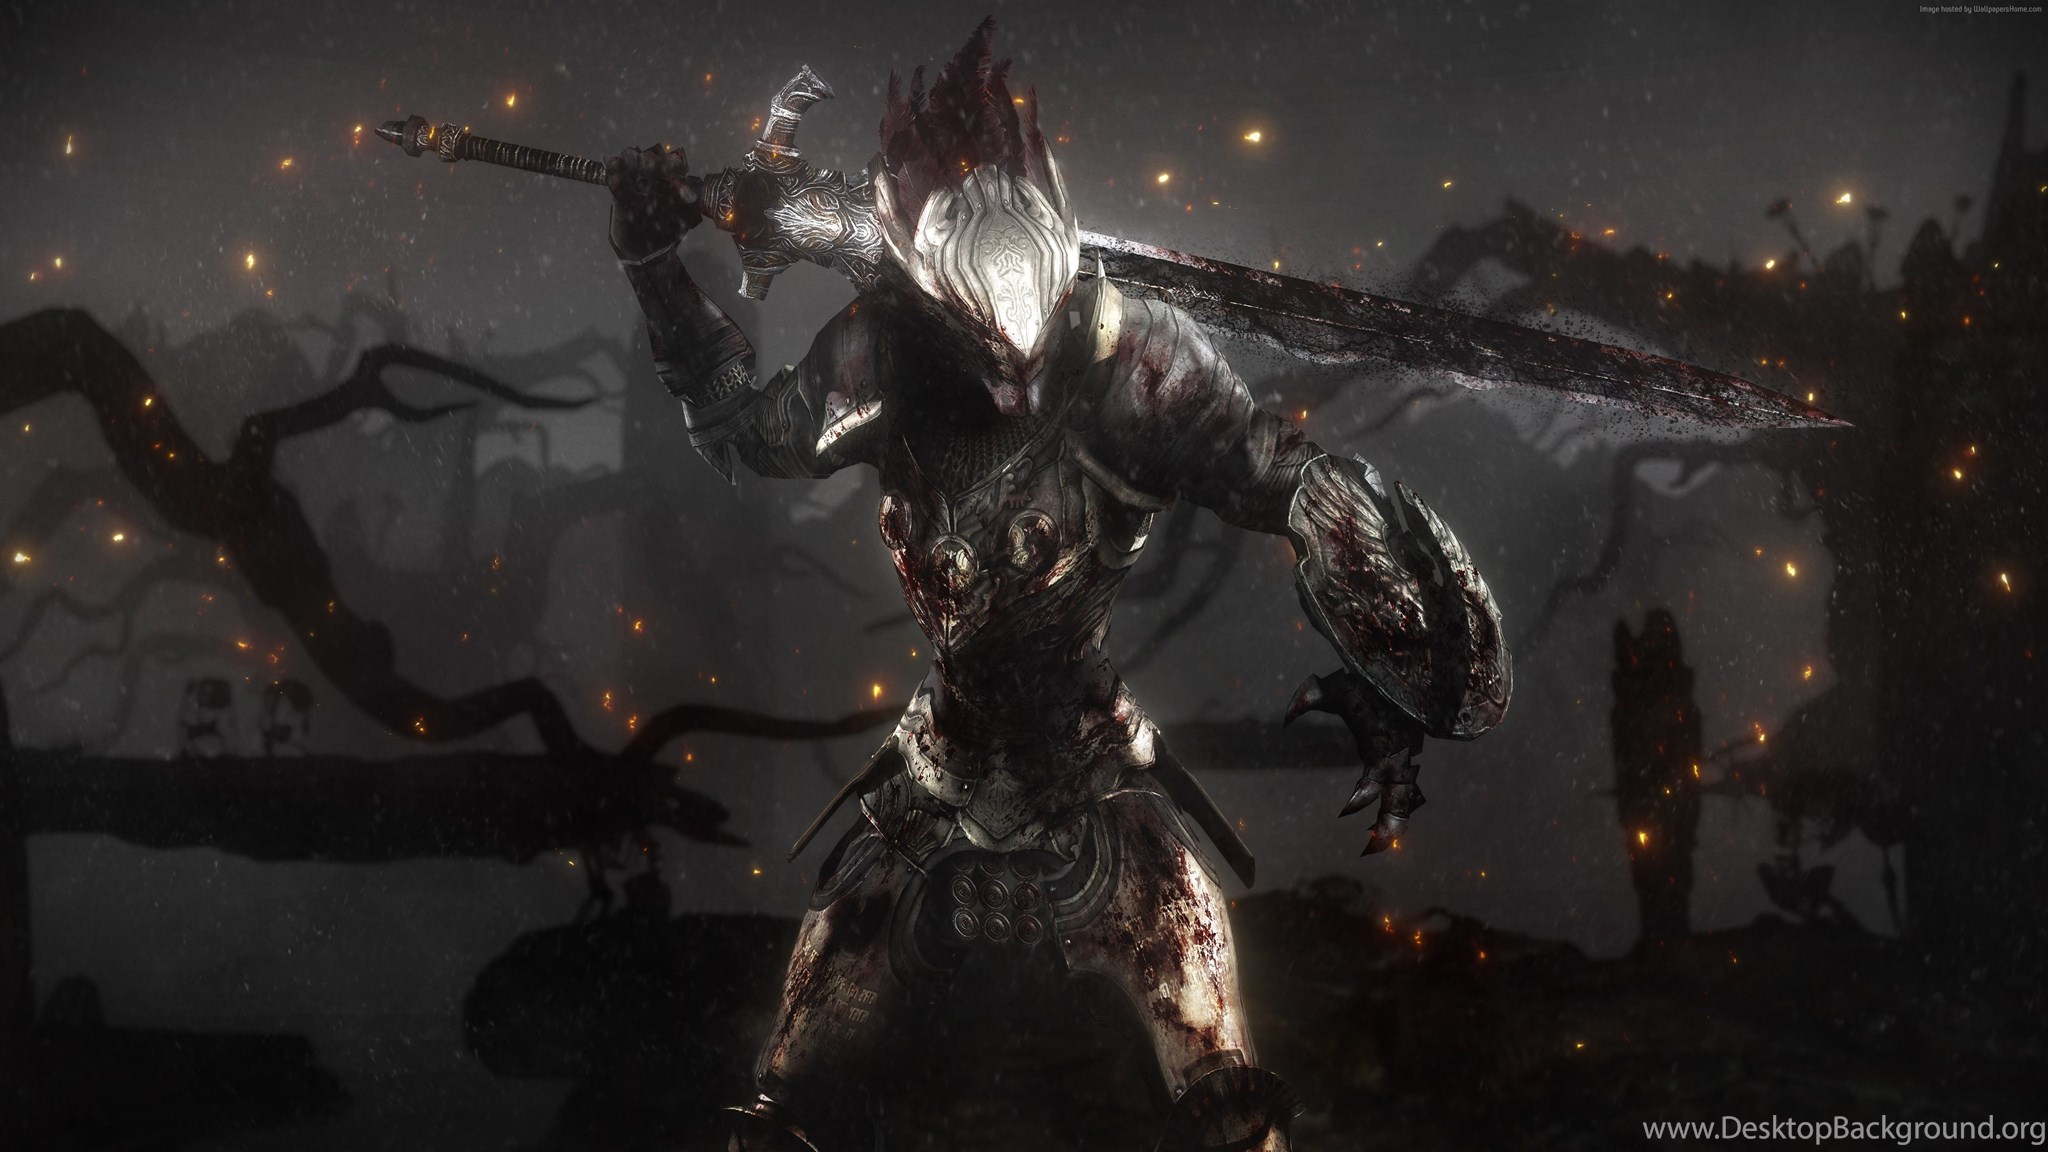 Dark Souls 3 21 9: Dark Souls 3 Wallpapers High Resolution And Quality